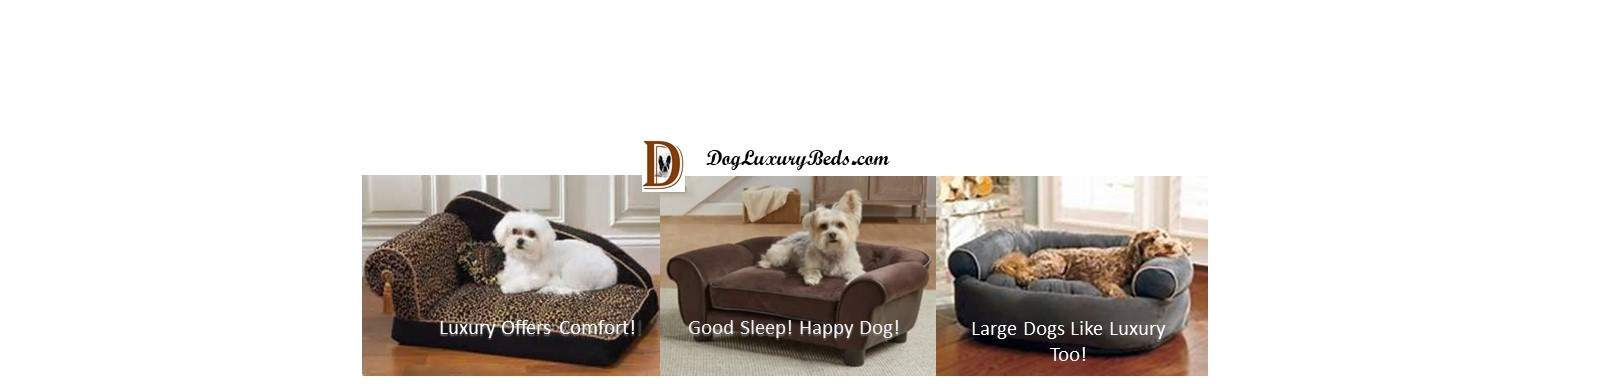 Dog Luxury Beds Give Your Dog A Restful Sleep